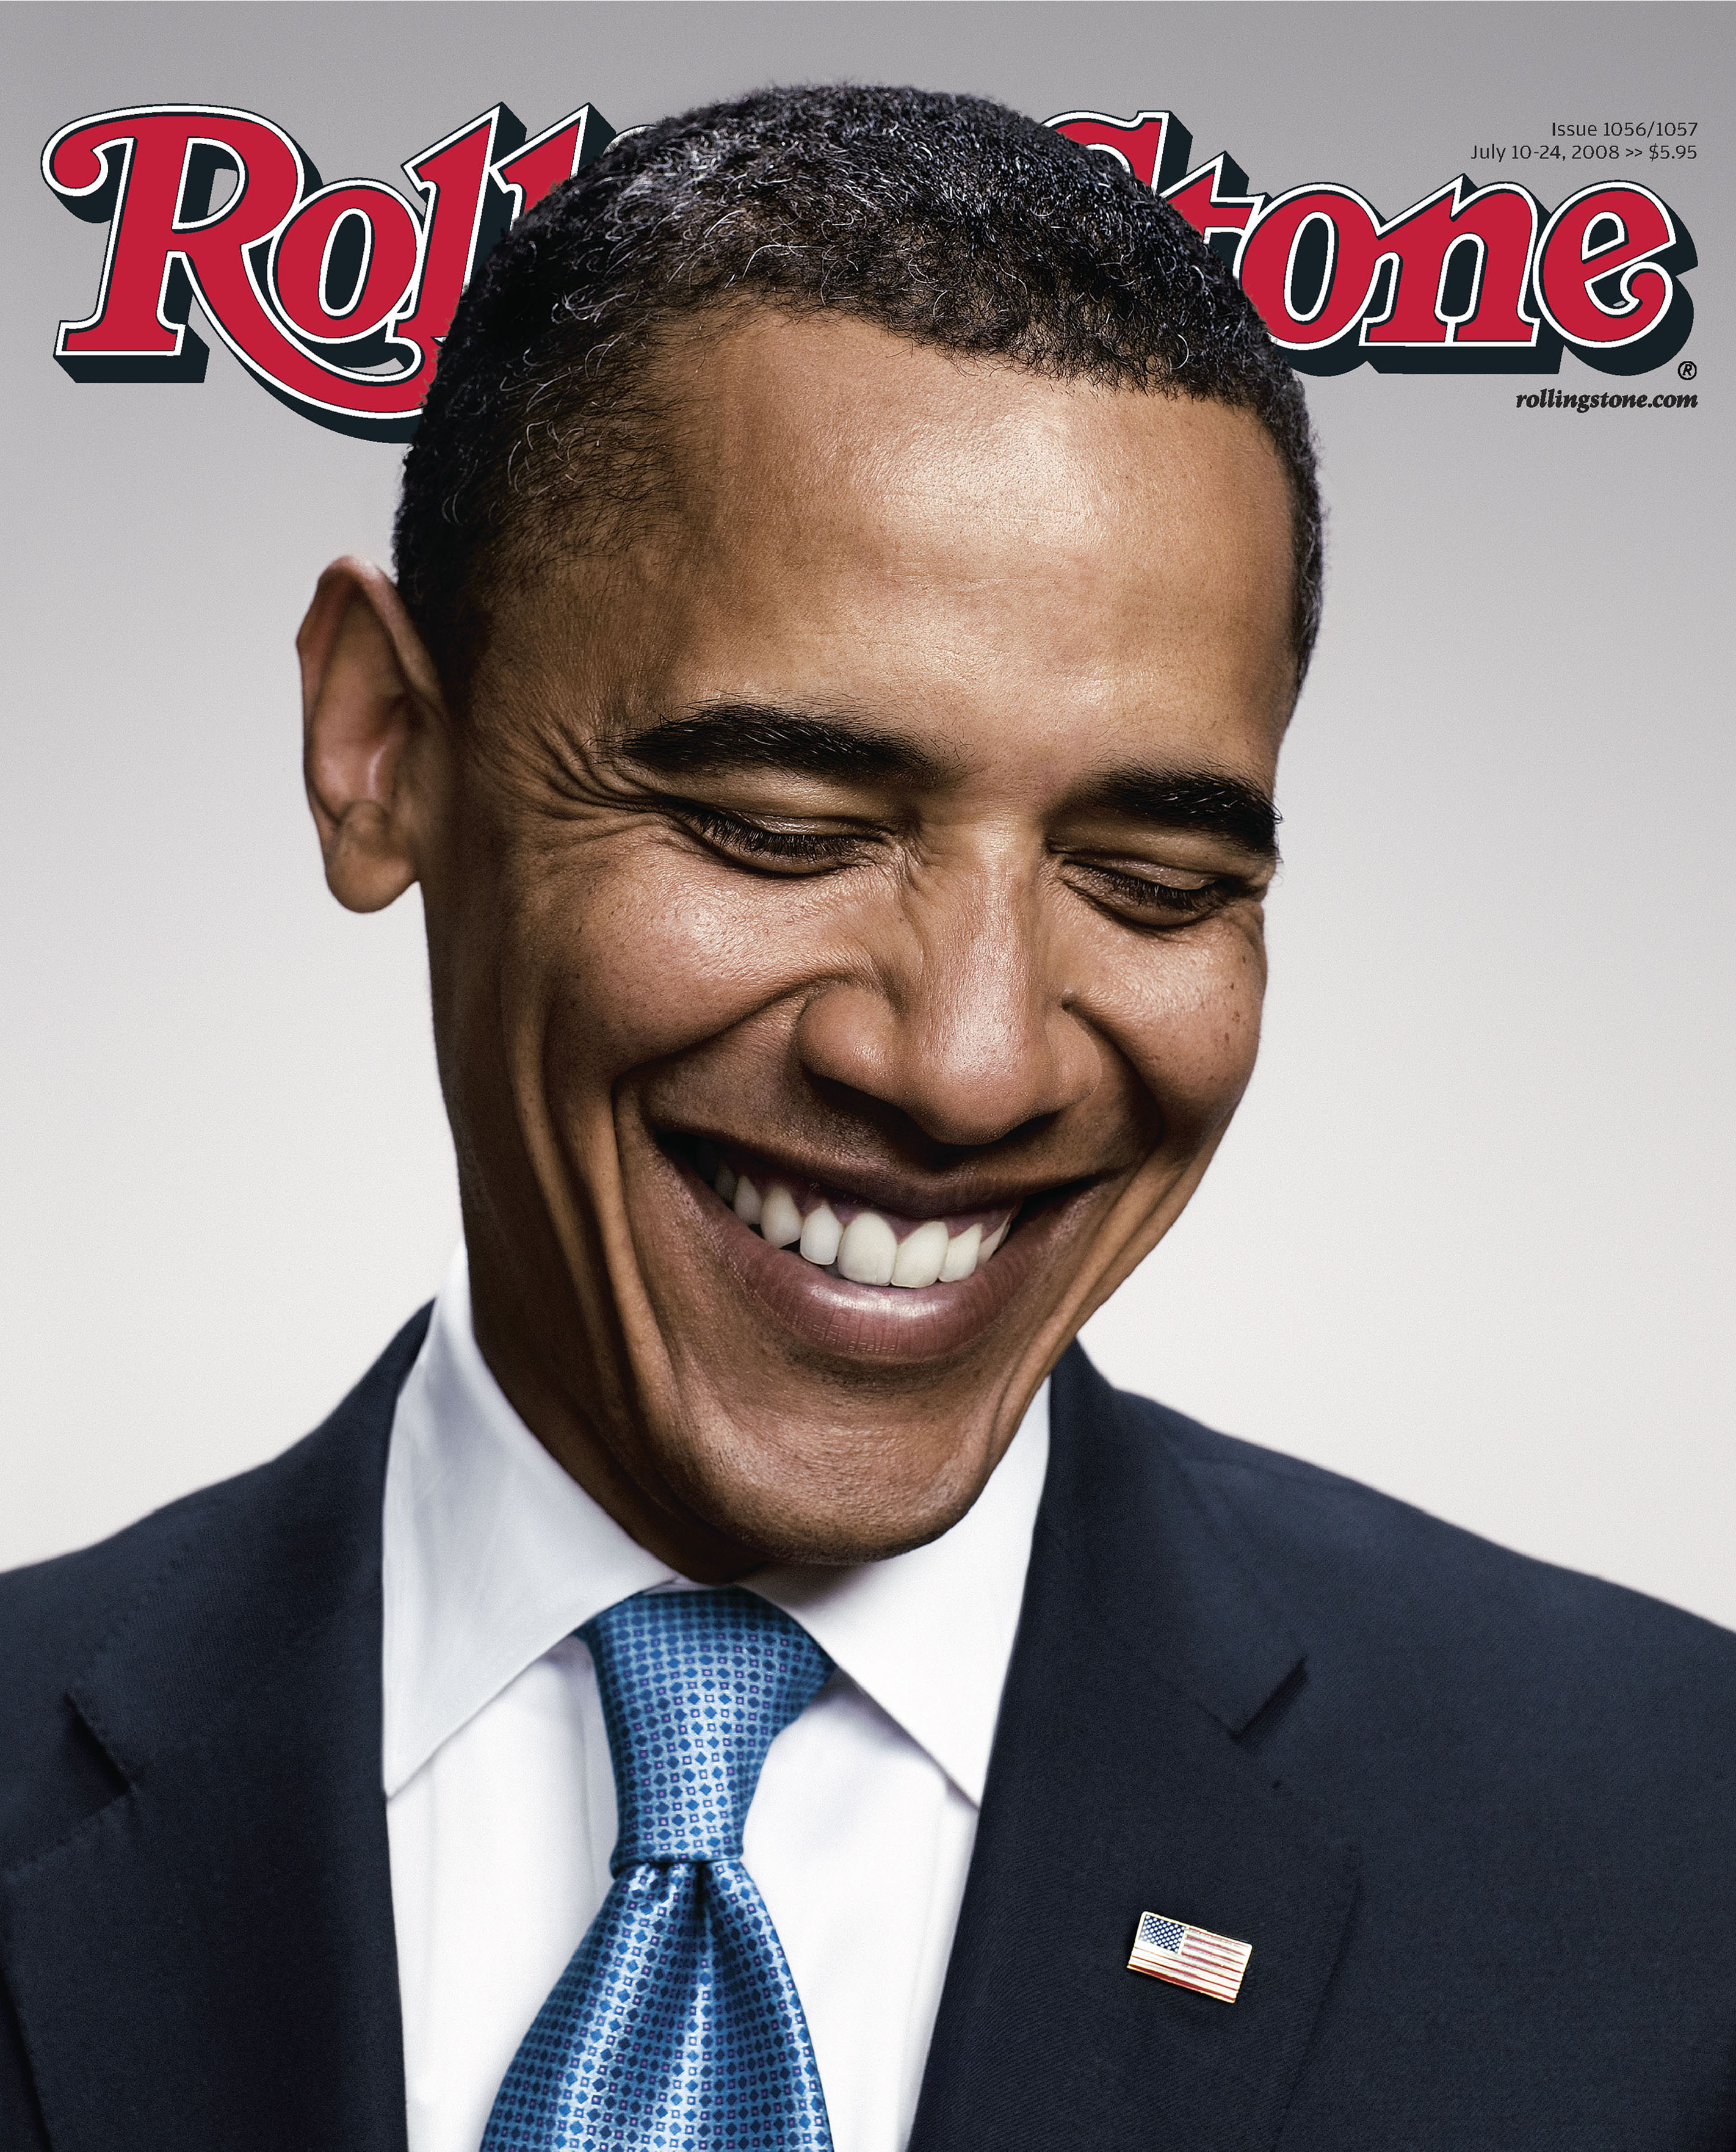 Rolling Stone's July 2008 cover featuring Barack Obama